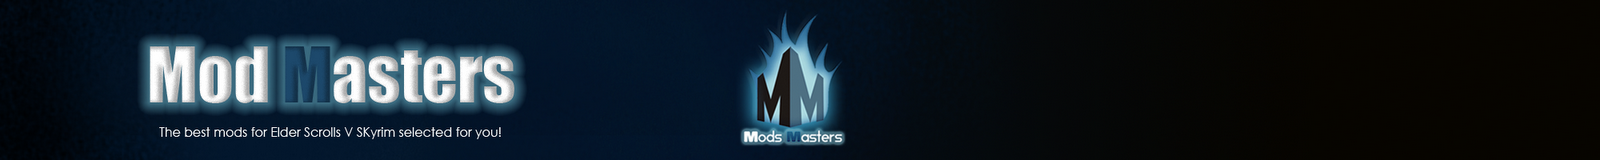 Mod Masters